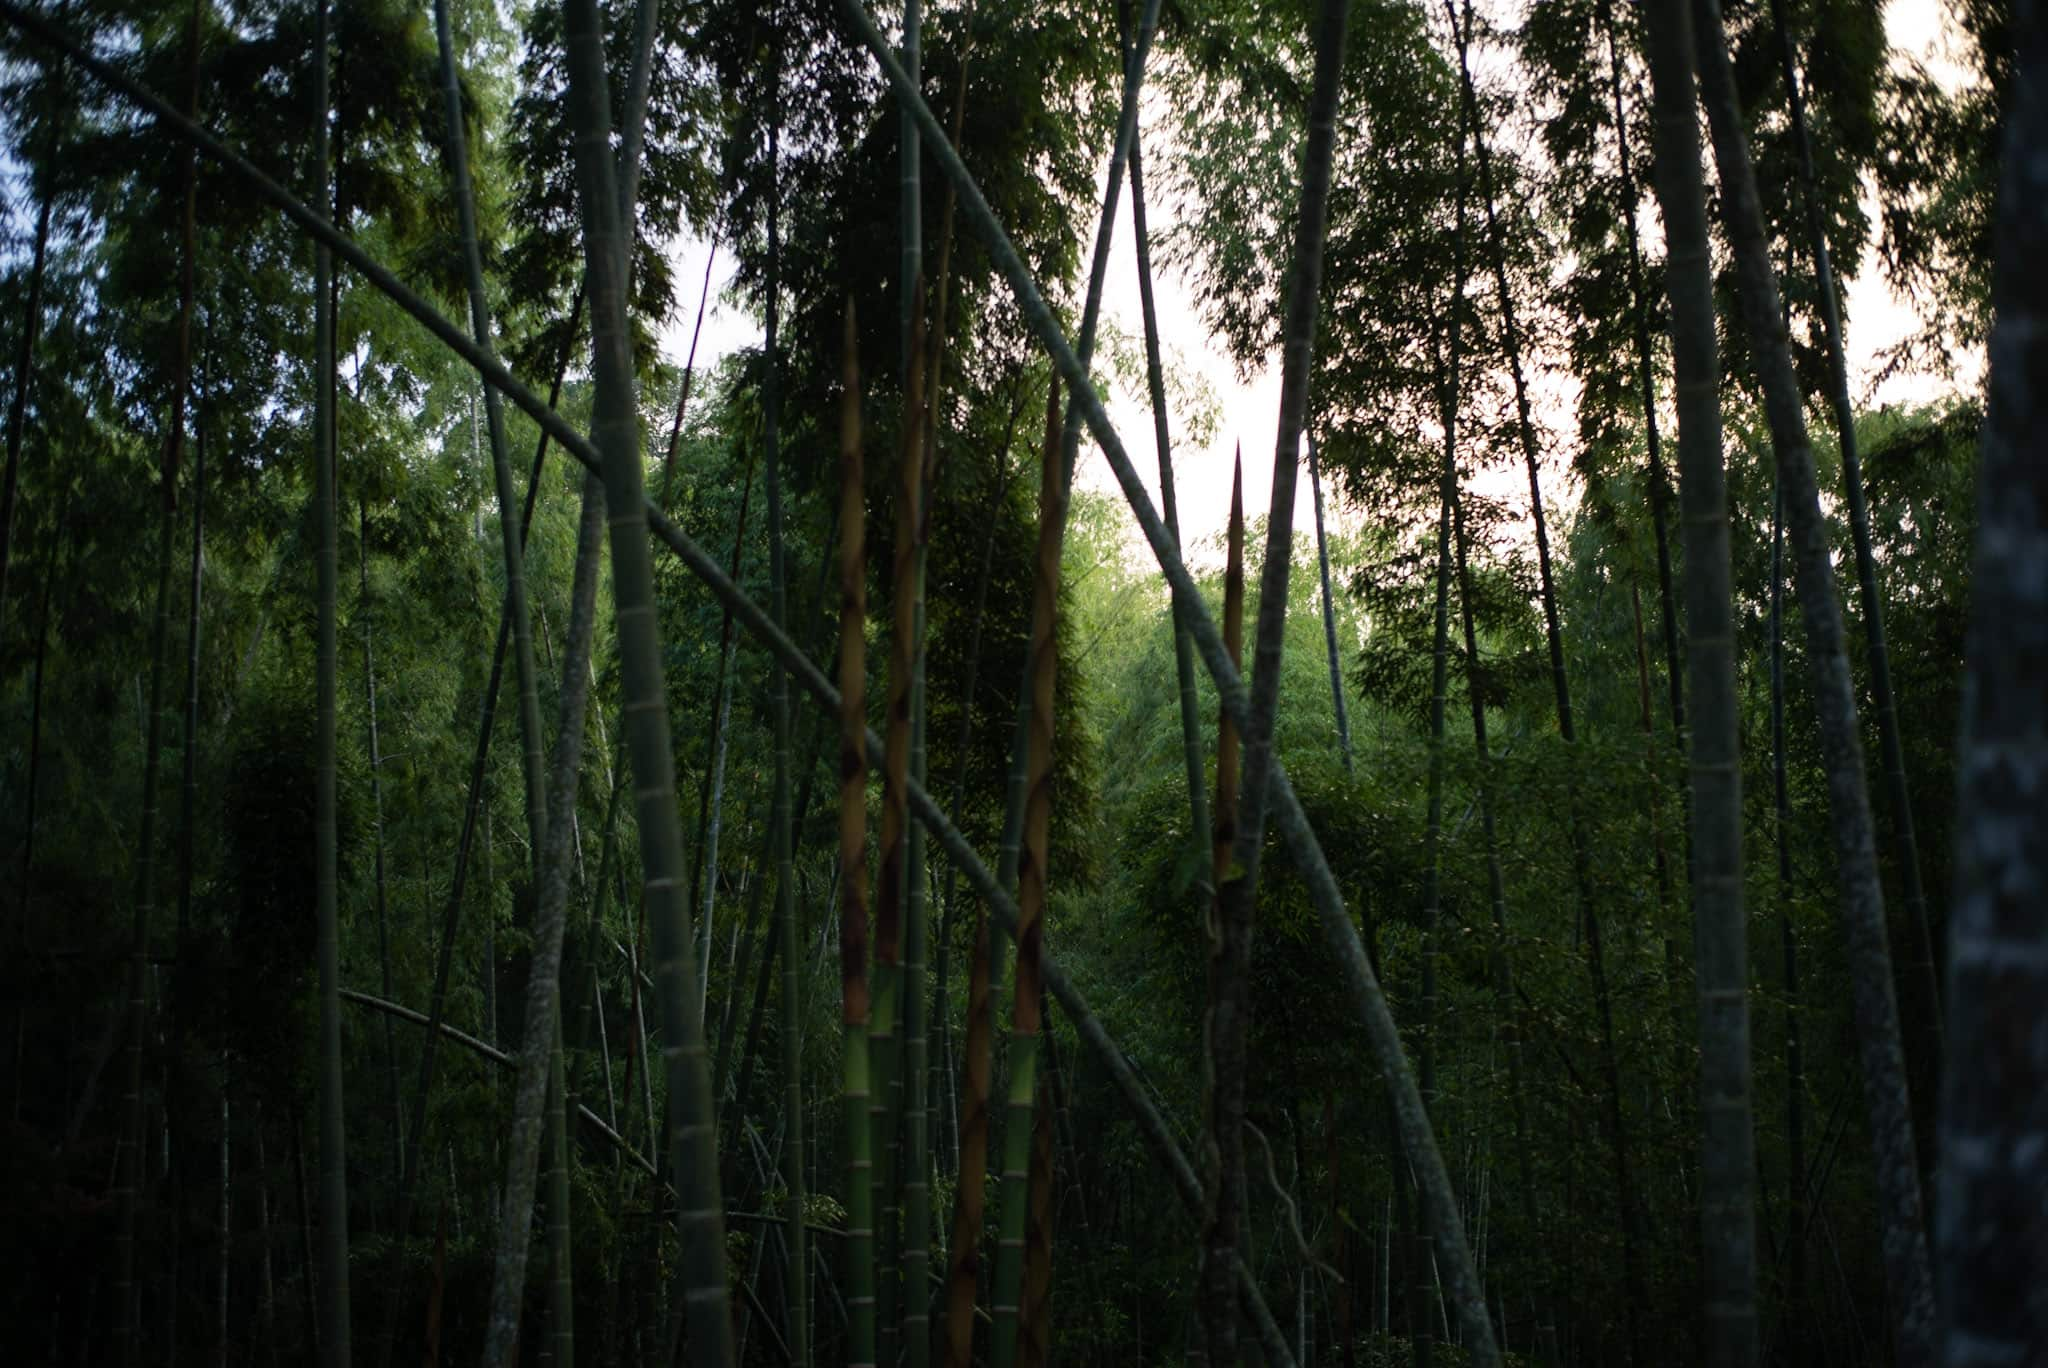 /img/pages/bamboo-textile/colombia/Bamboo_forest_in_Manizales,_Colombia.jpg